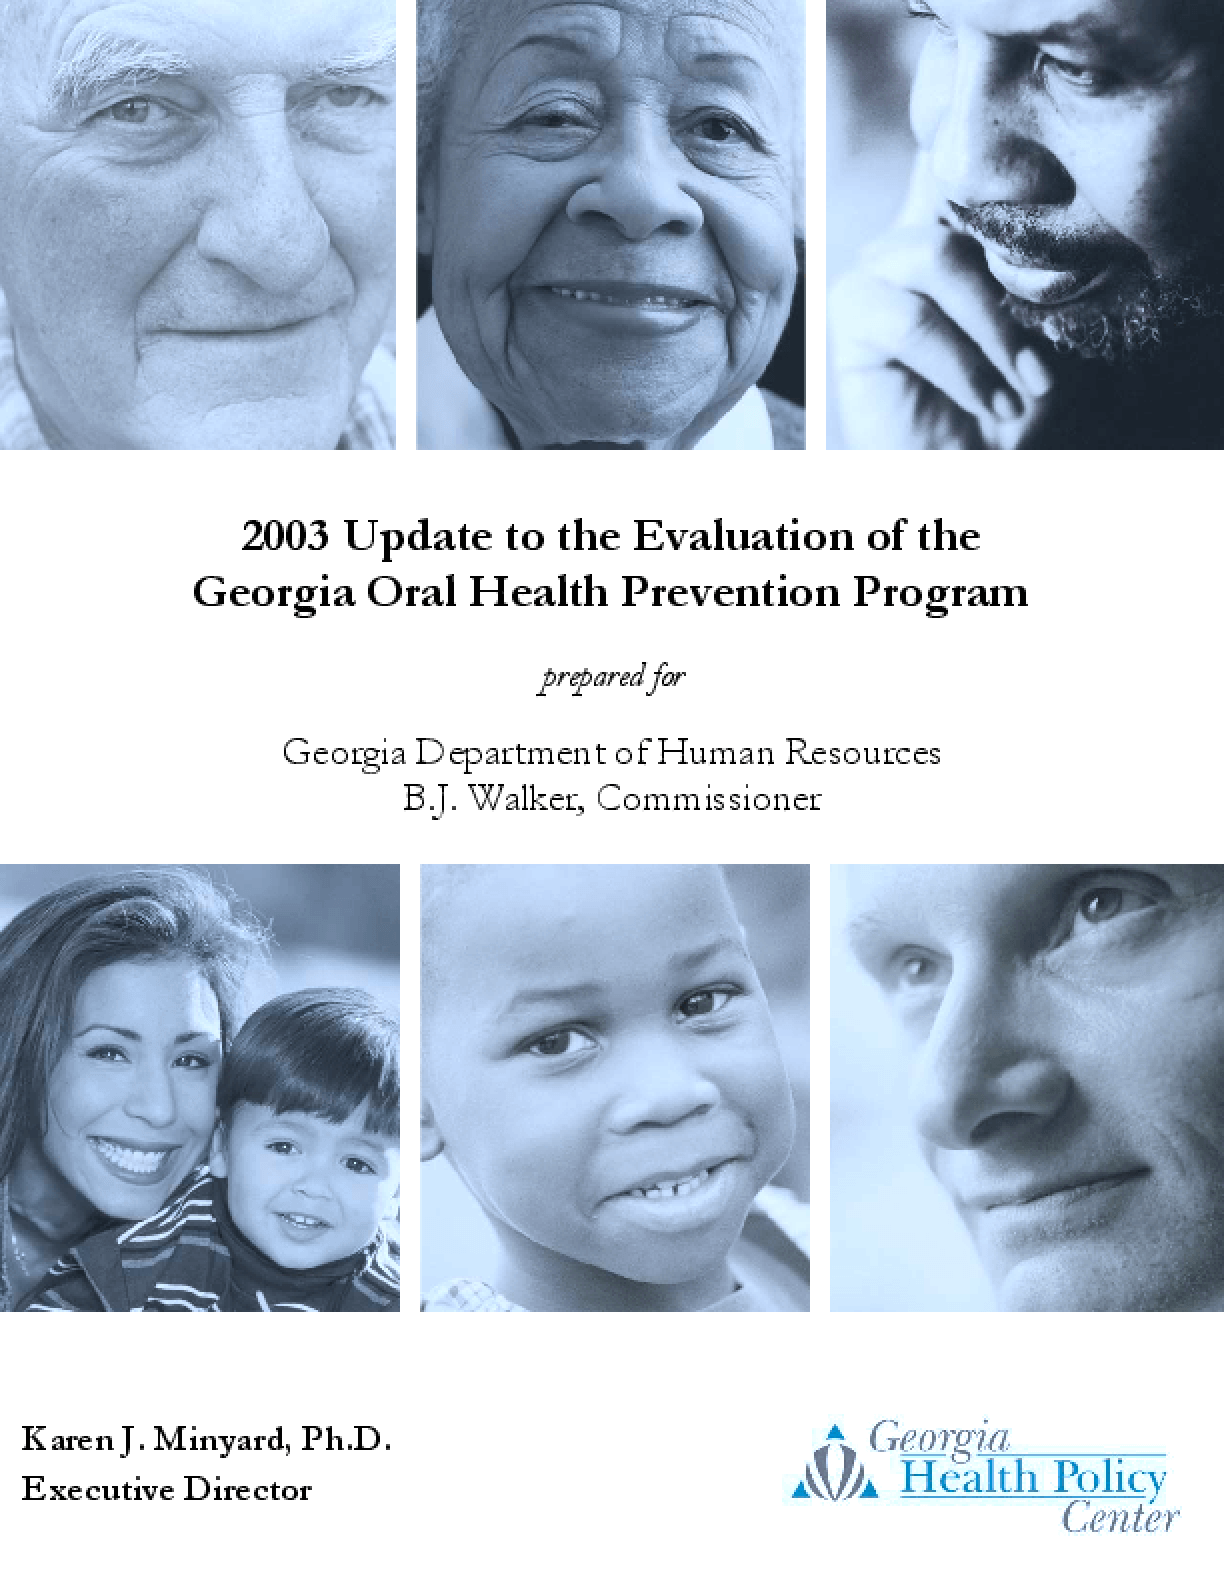 CY2003 Update to the Evaluation of the Georgia Oral Health Prevention Program